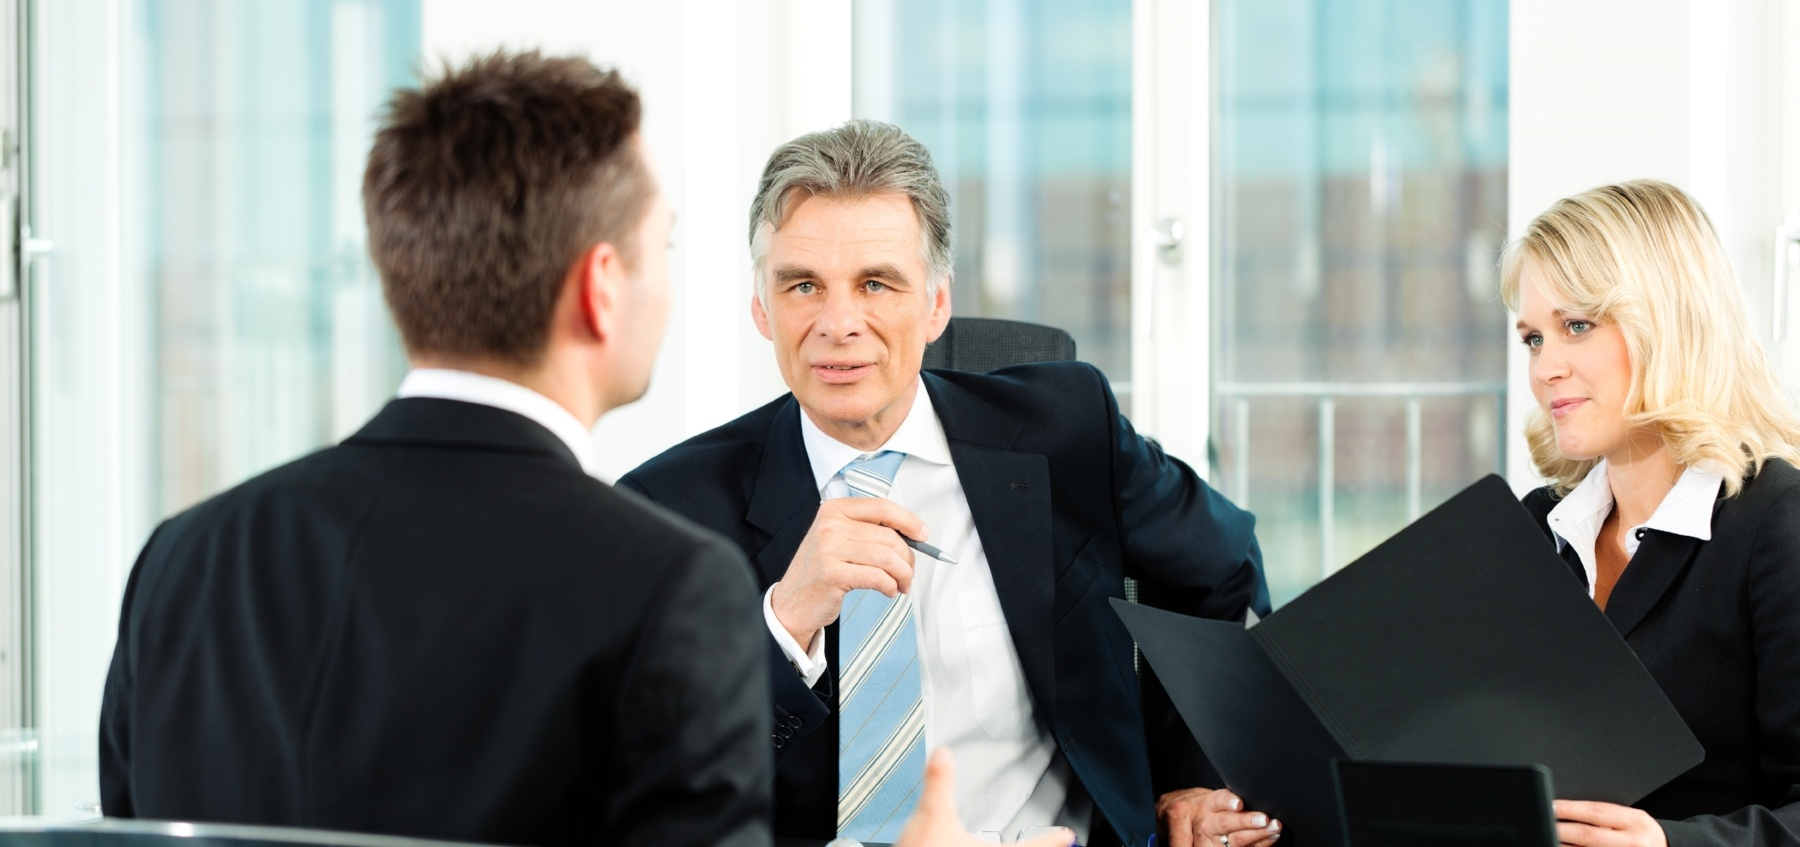 it interview tips